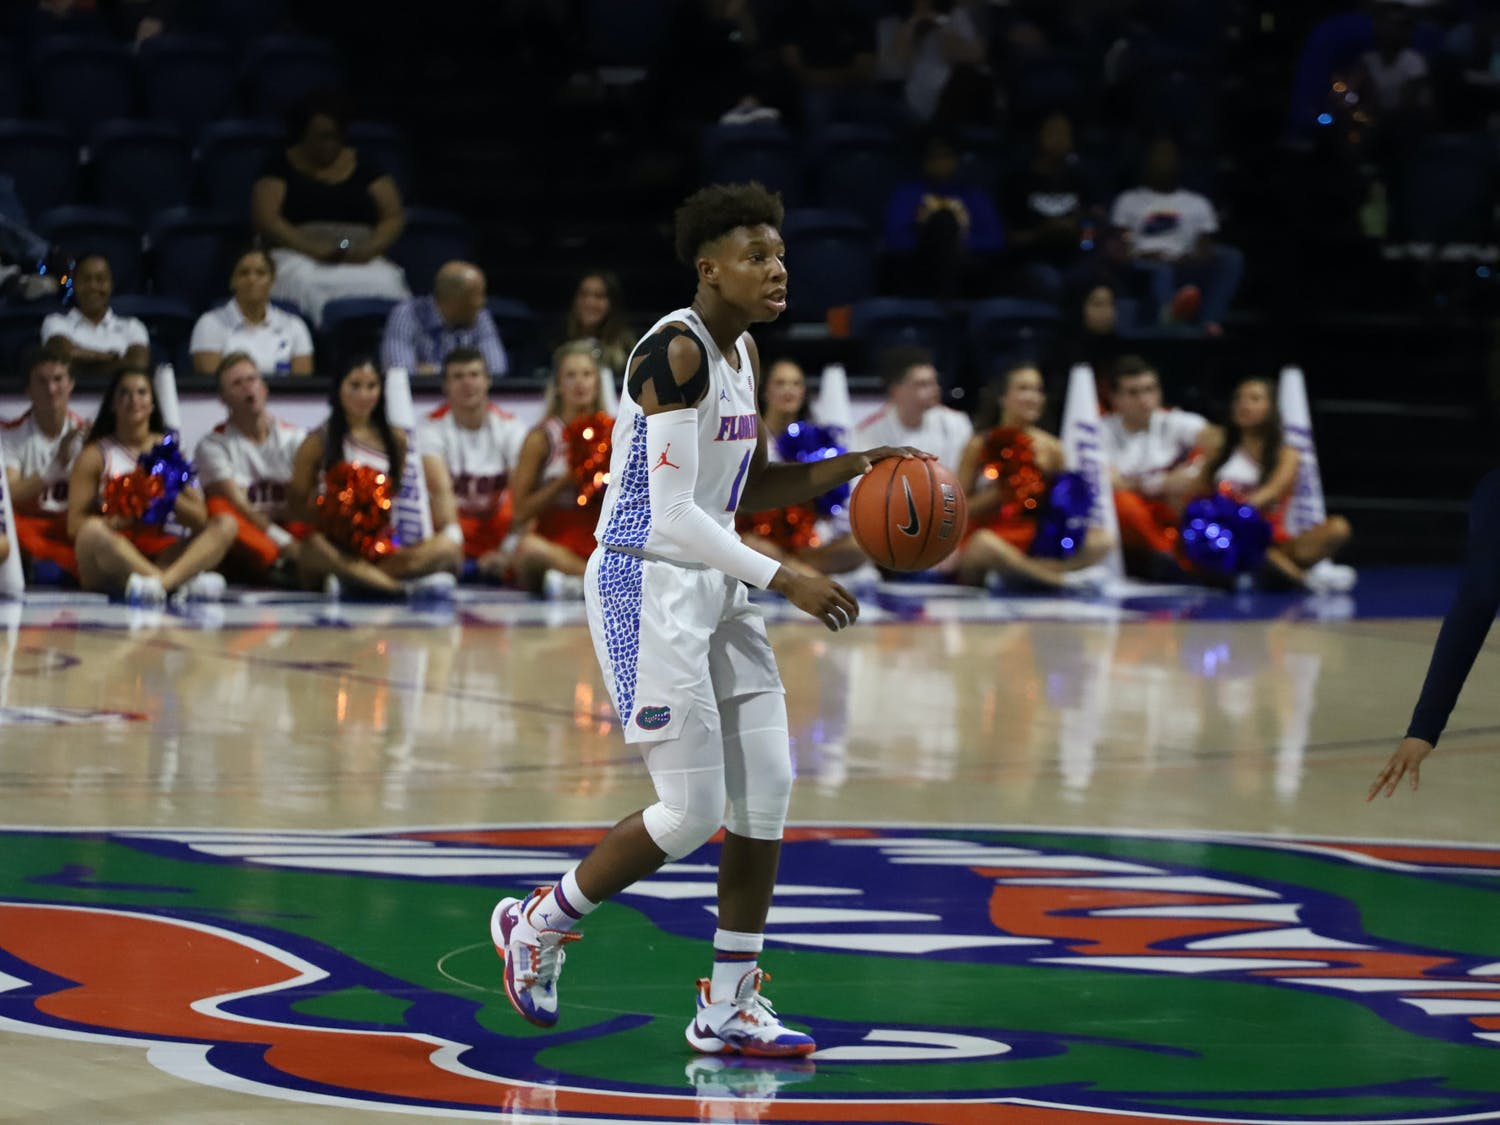 Florida guard Kiara Smith scored 19 points in 35 minutes of the Gators' win over Cincinnati Saturday.